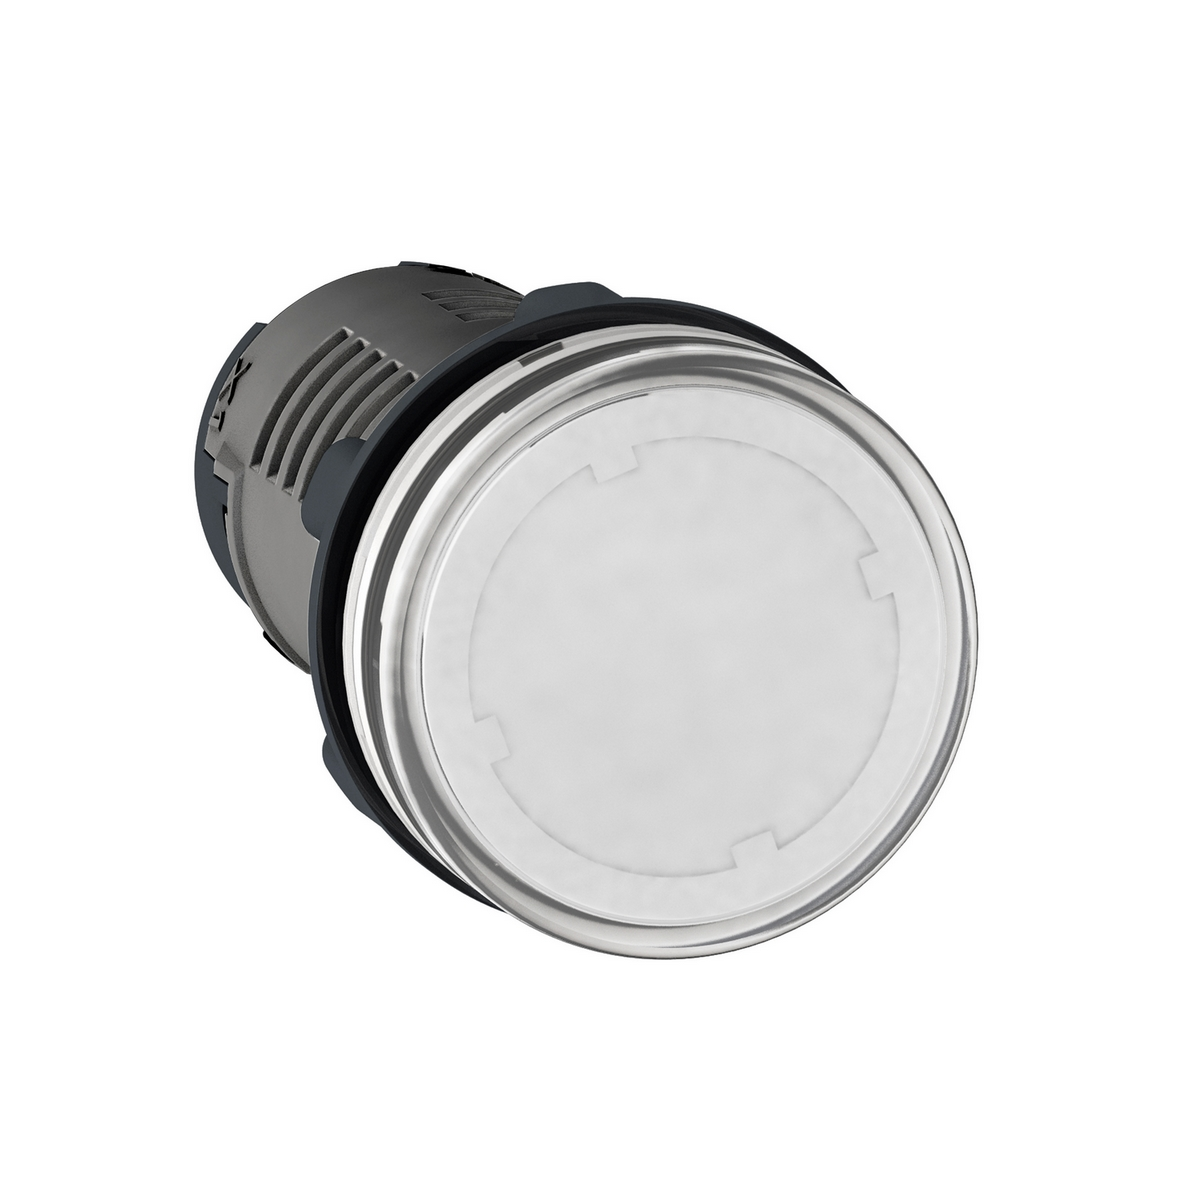 SCHNEIDER ELECTRIC XA2 PILOTO LUMINOSO BLANCO LED 110VCA